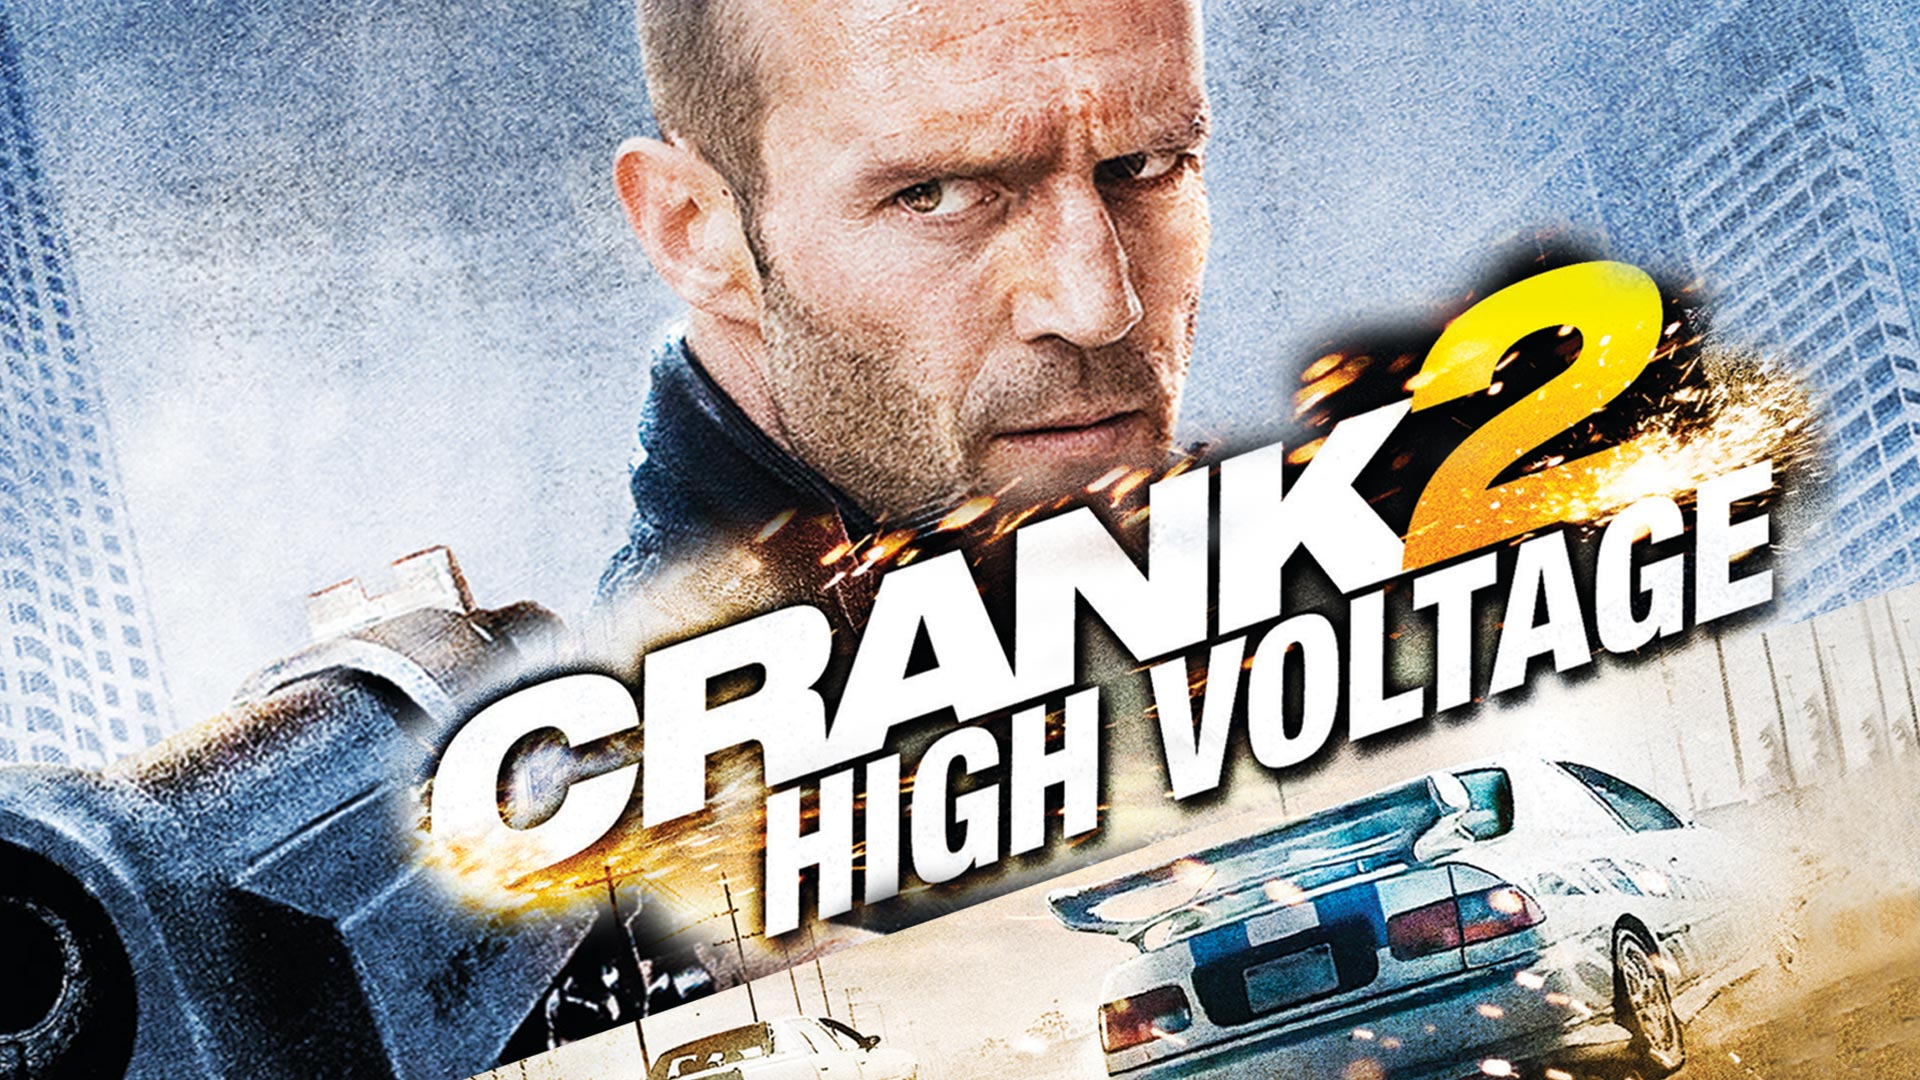 Crank 2: High Voltage - Hollywood Suite